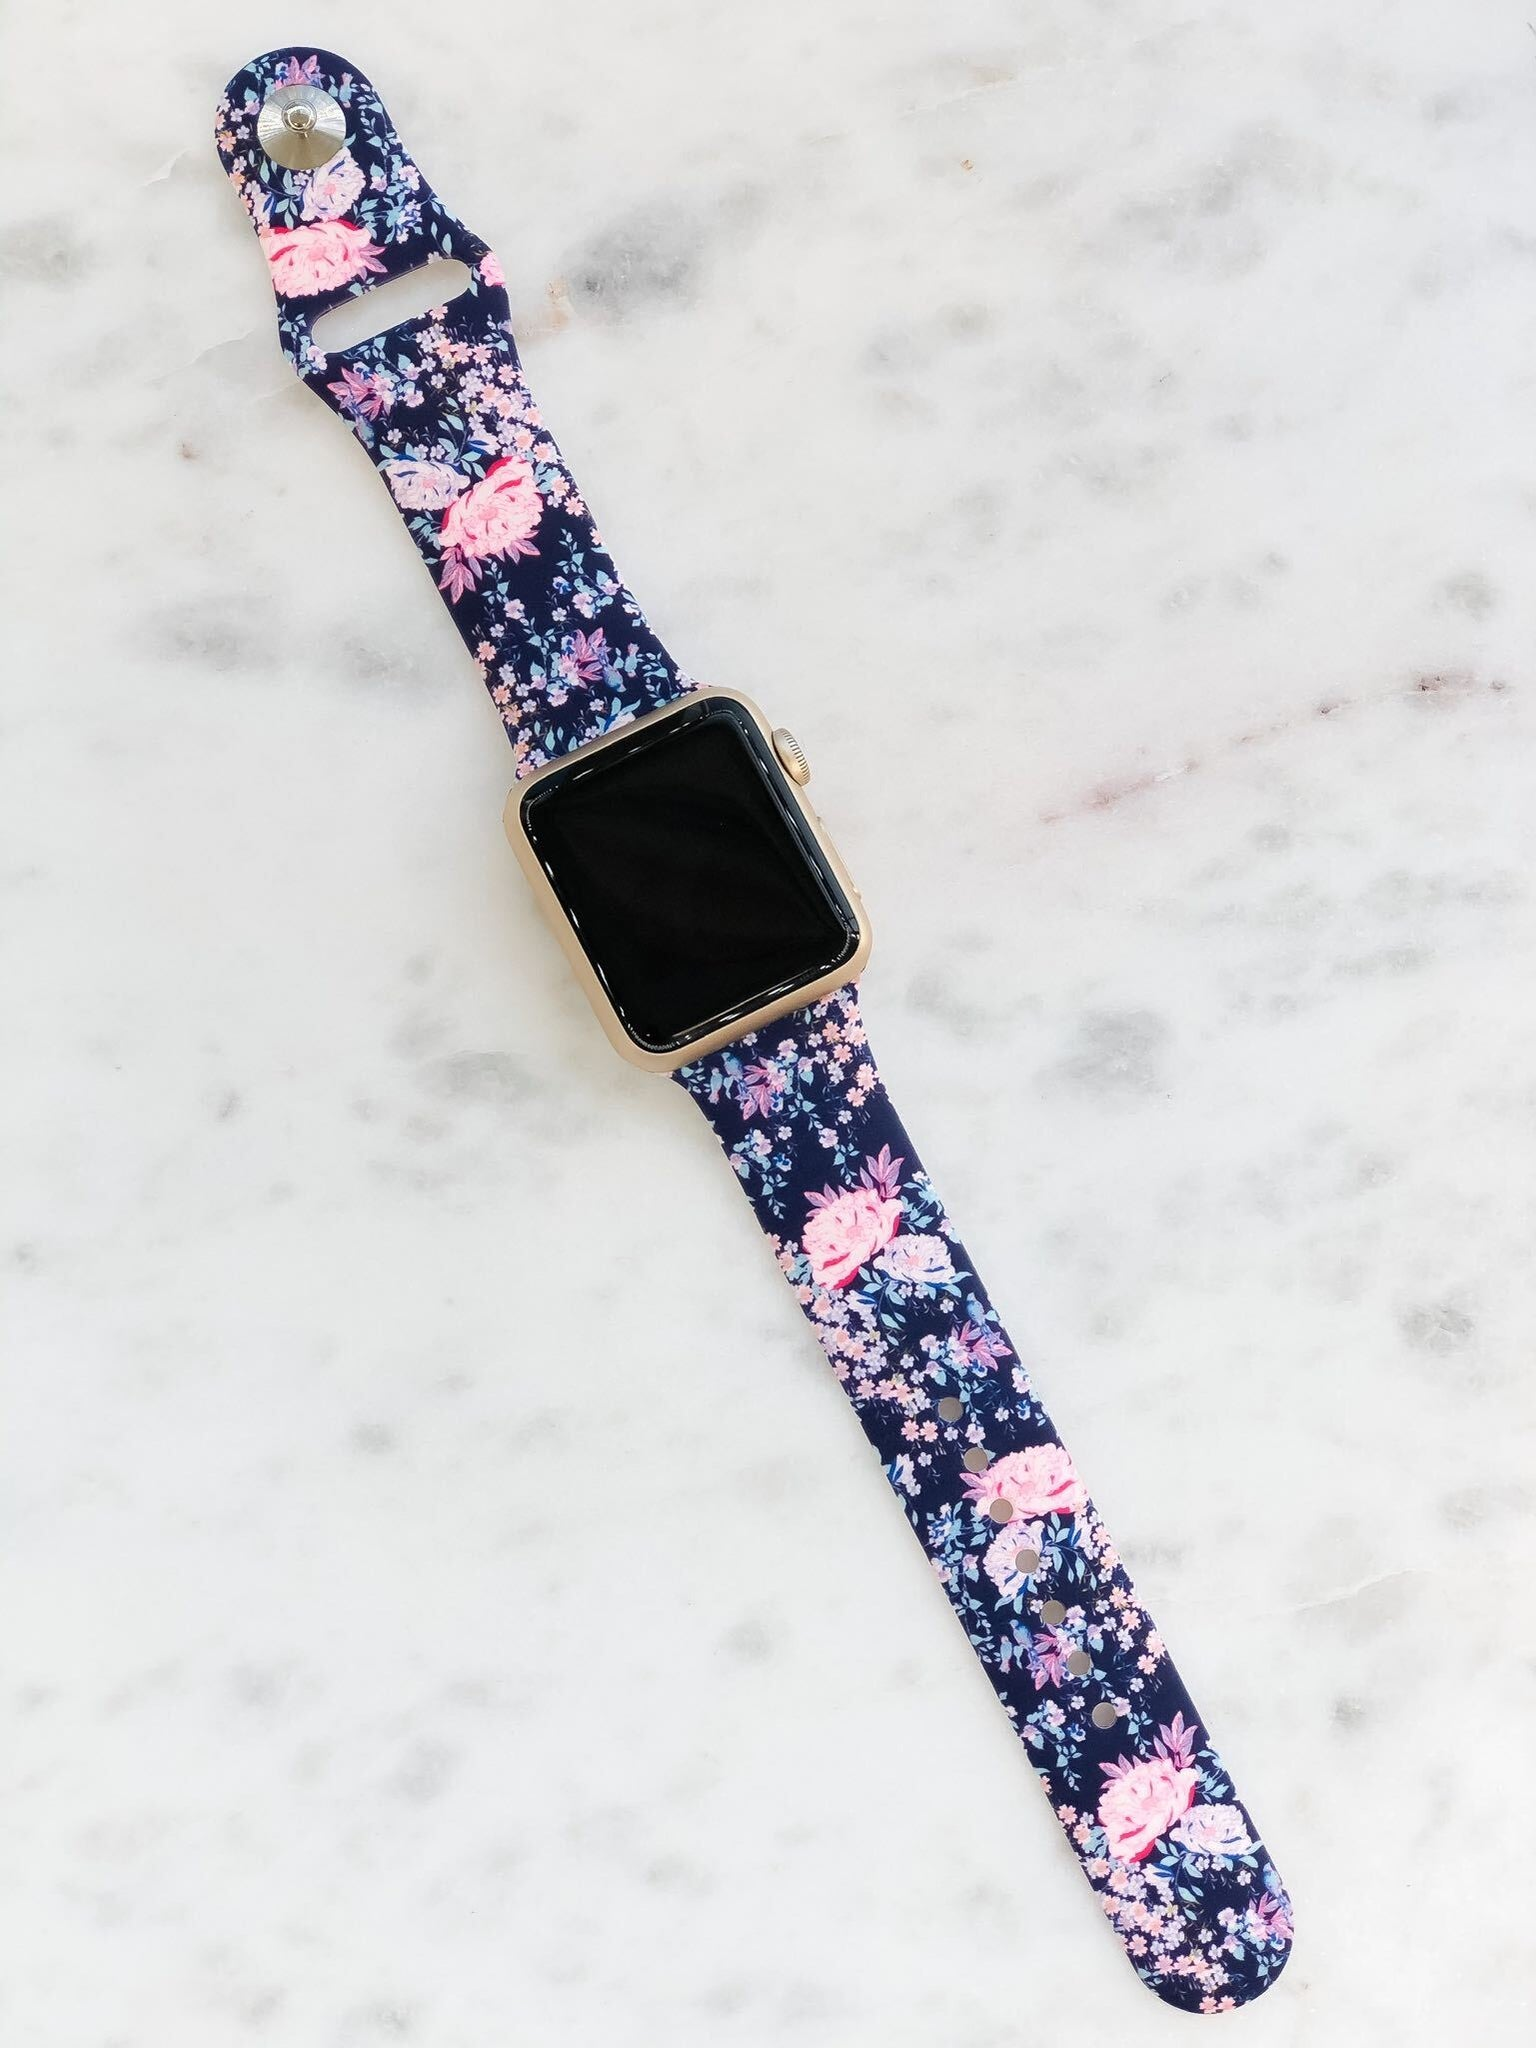 Navy Blue Floral Printed Silicone Watch Band